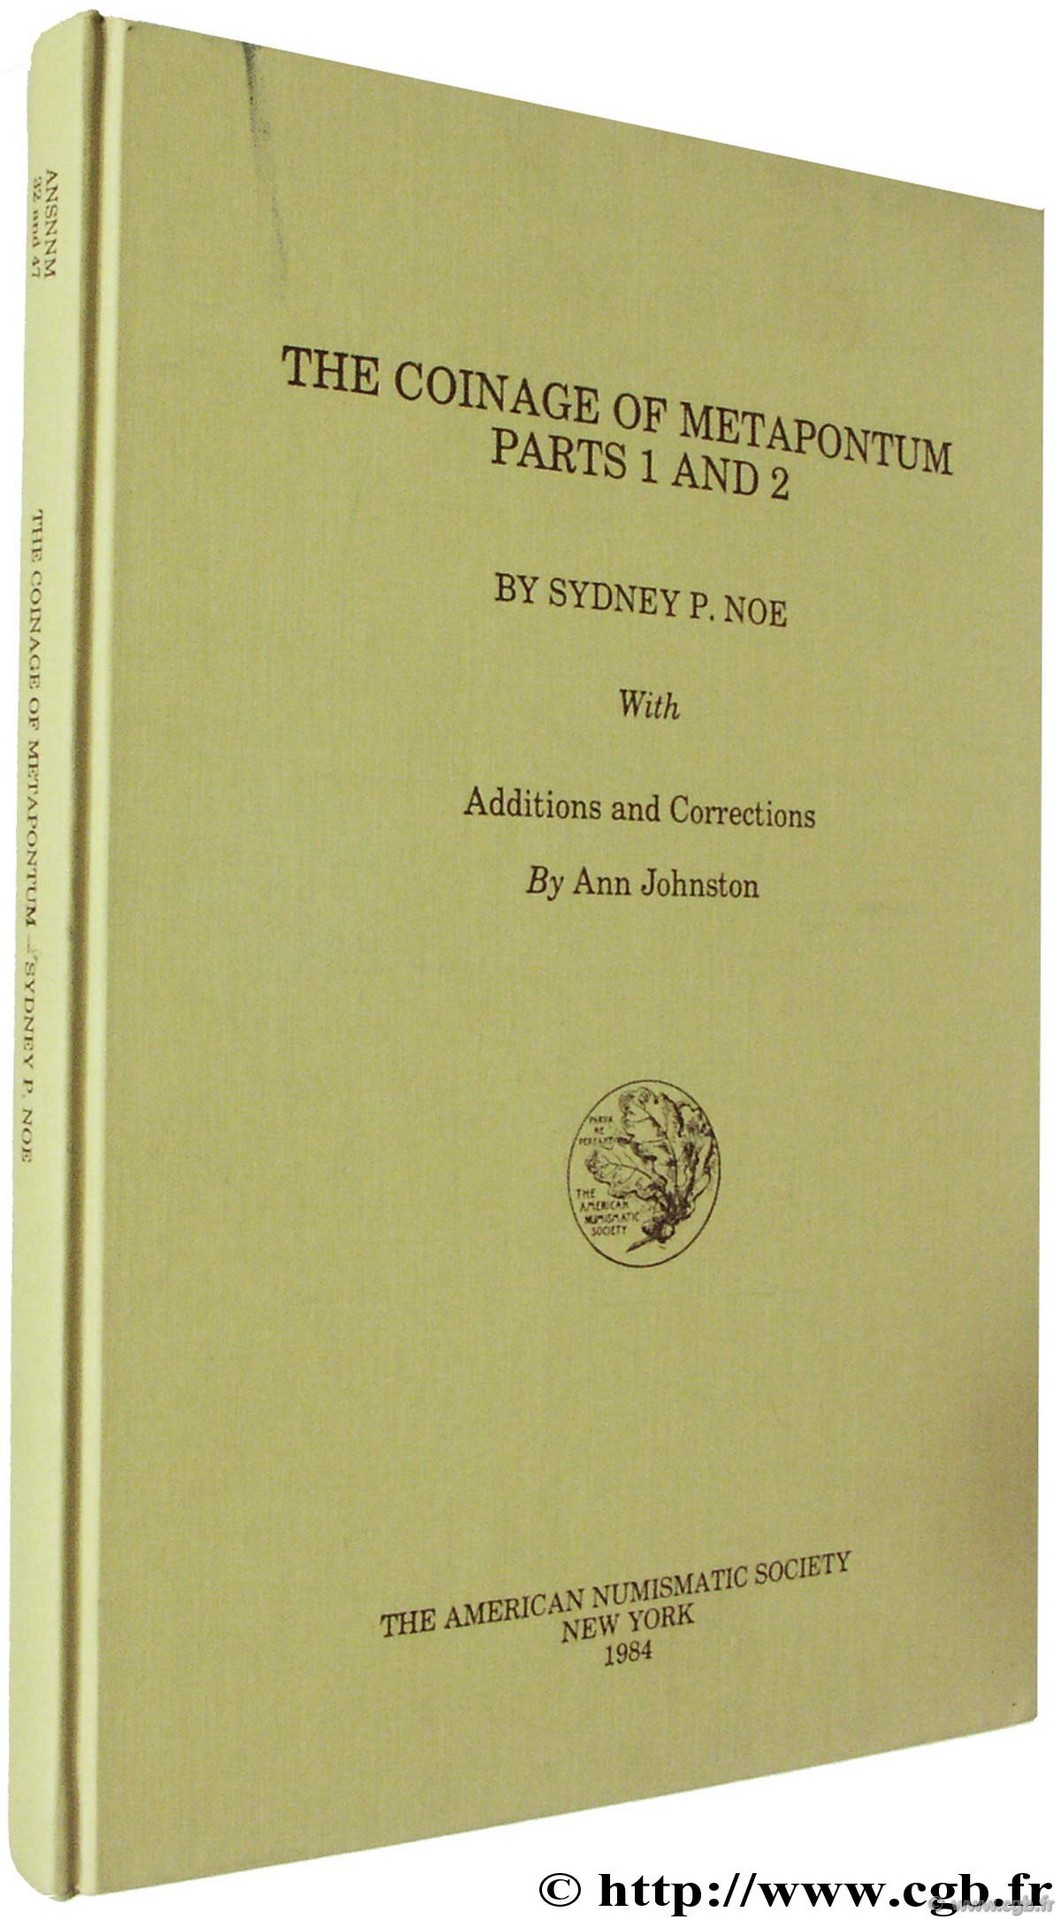 The Coinage of Métapontum, parts 1 and 2, with Additions and Corrections The American Numismatic Society NOE S.-P., JOHNSTON A.